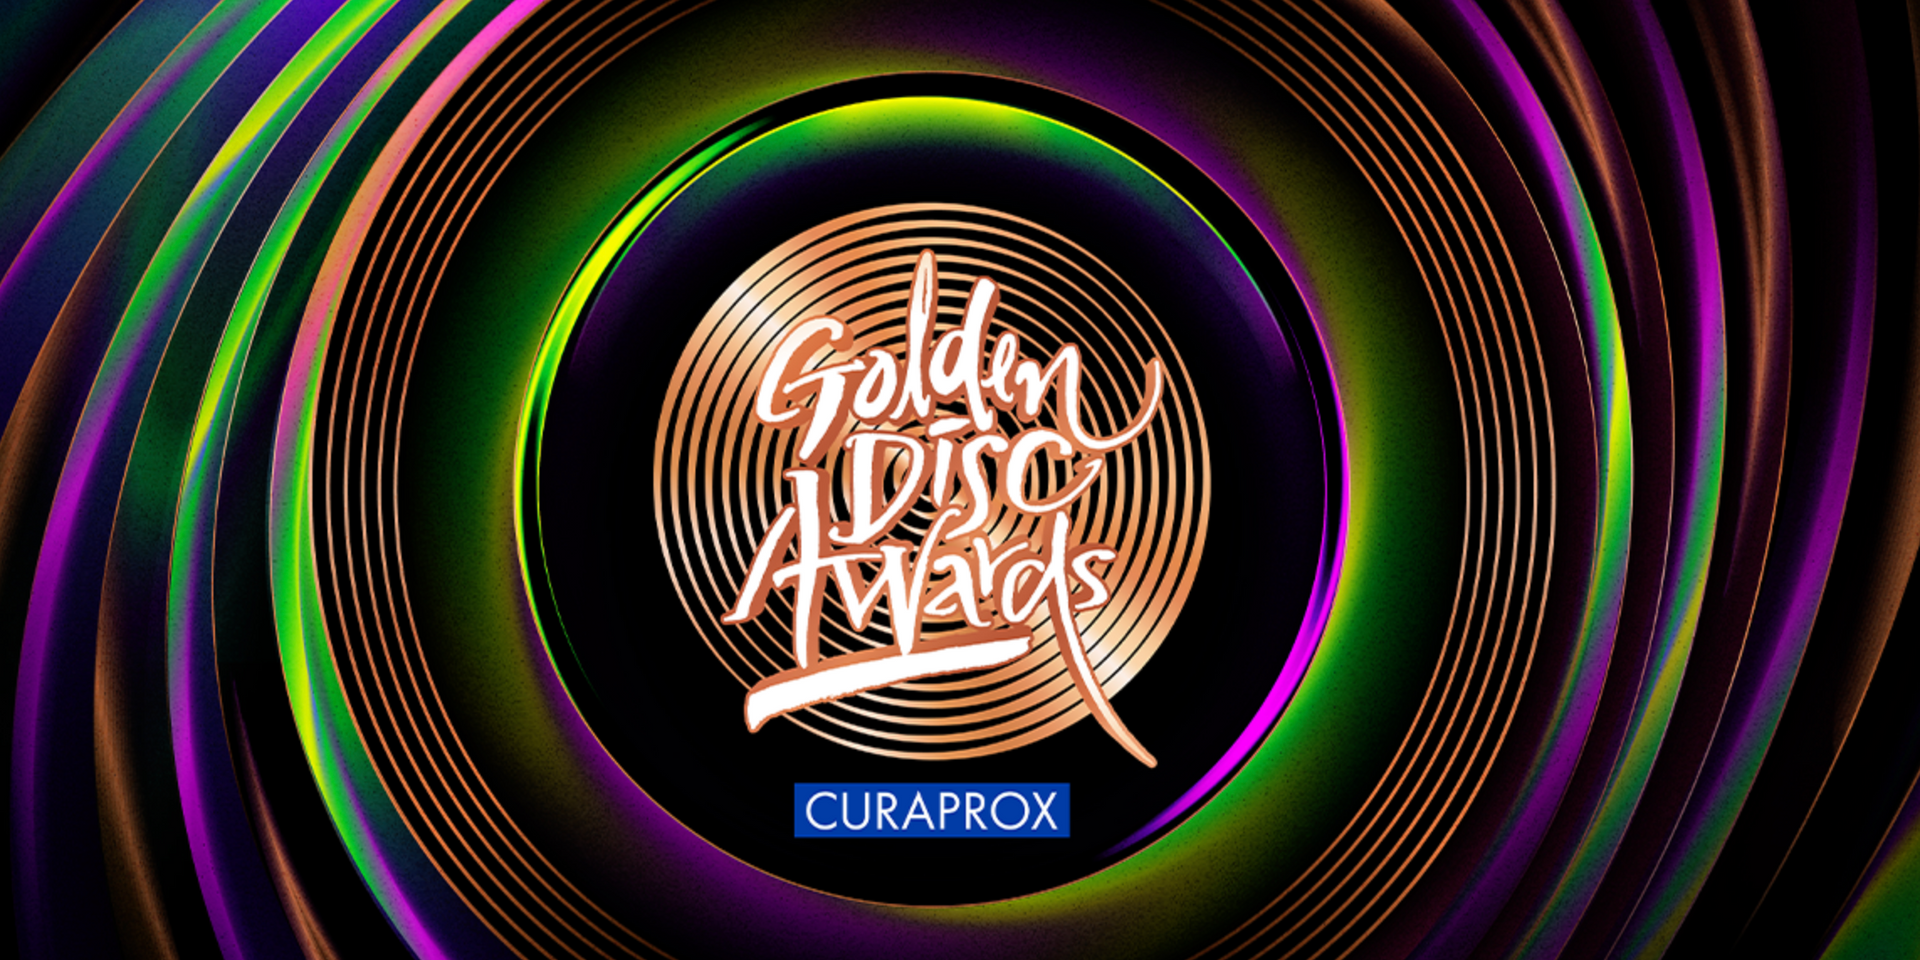 Golden Disc Awards announce nominees - BLACKPINK, BTS, EXO, ITZY, NCT, Stray Kids, Taemin, and more